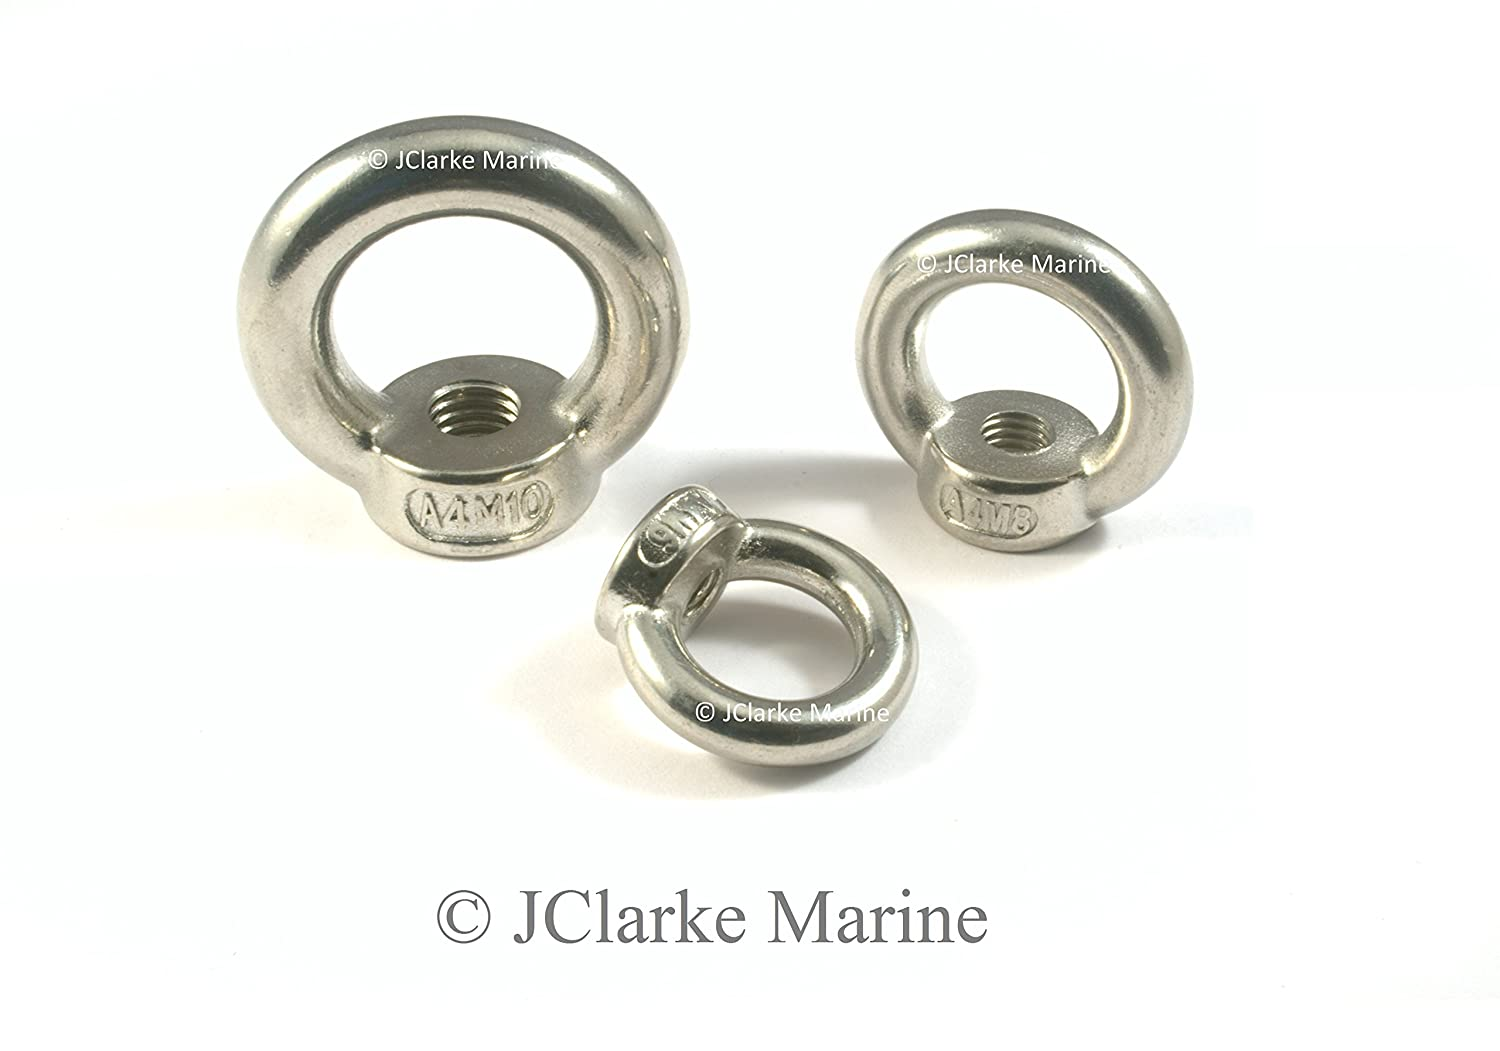 M5 M6 M8 M10 M12 Stainless steel eye nuts female eye bolt made from marine grade stainless 316 A4 (4, M8) JClarke Marine